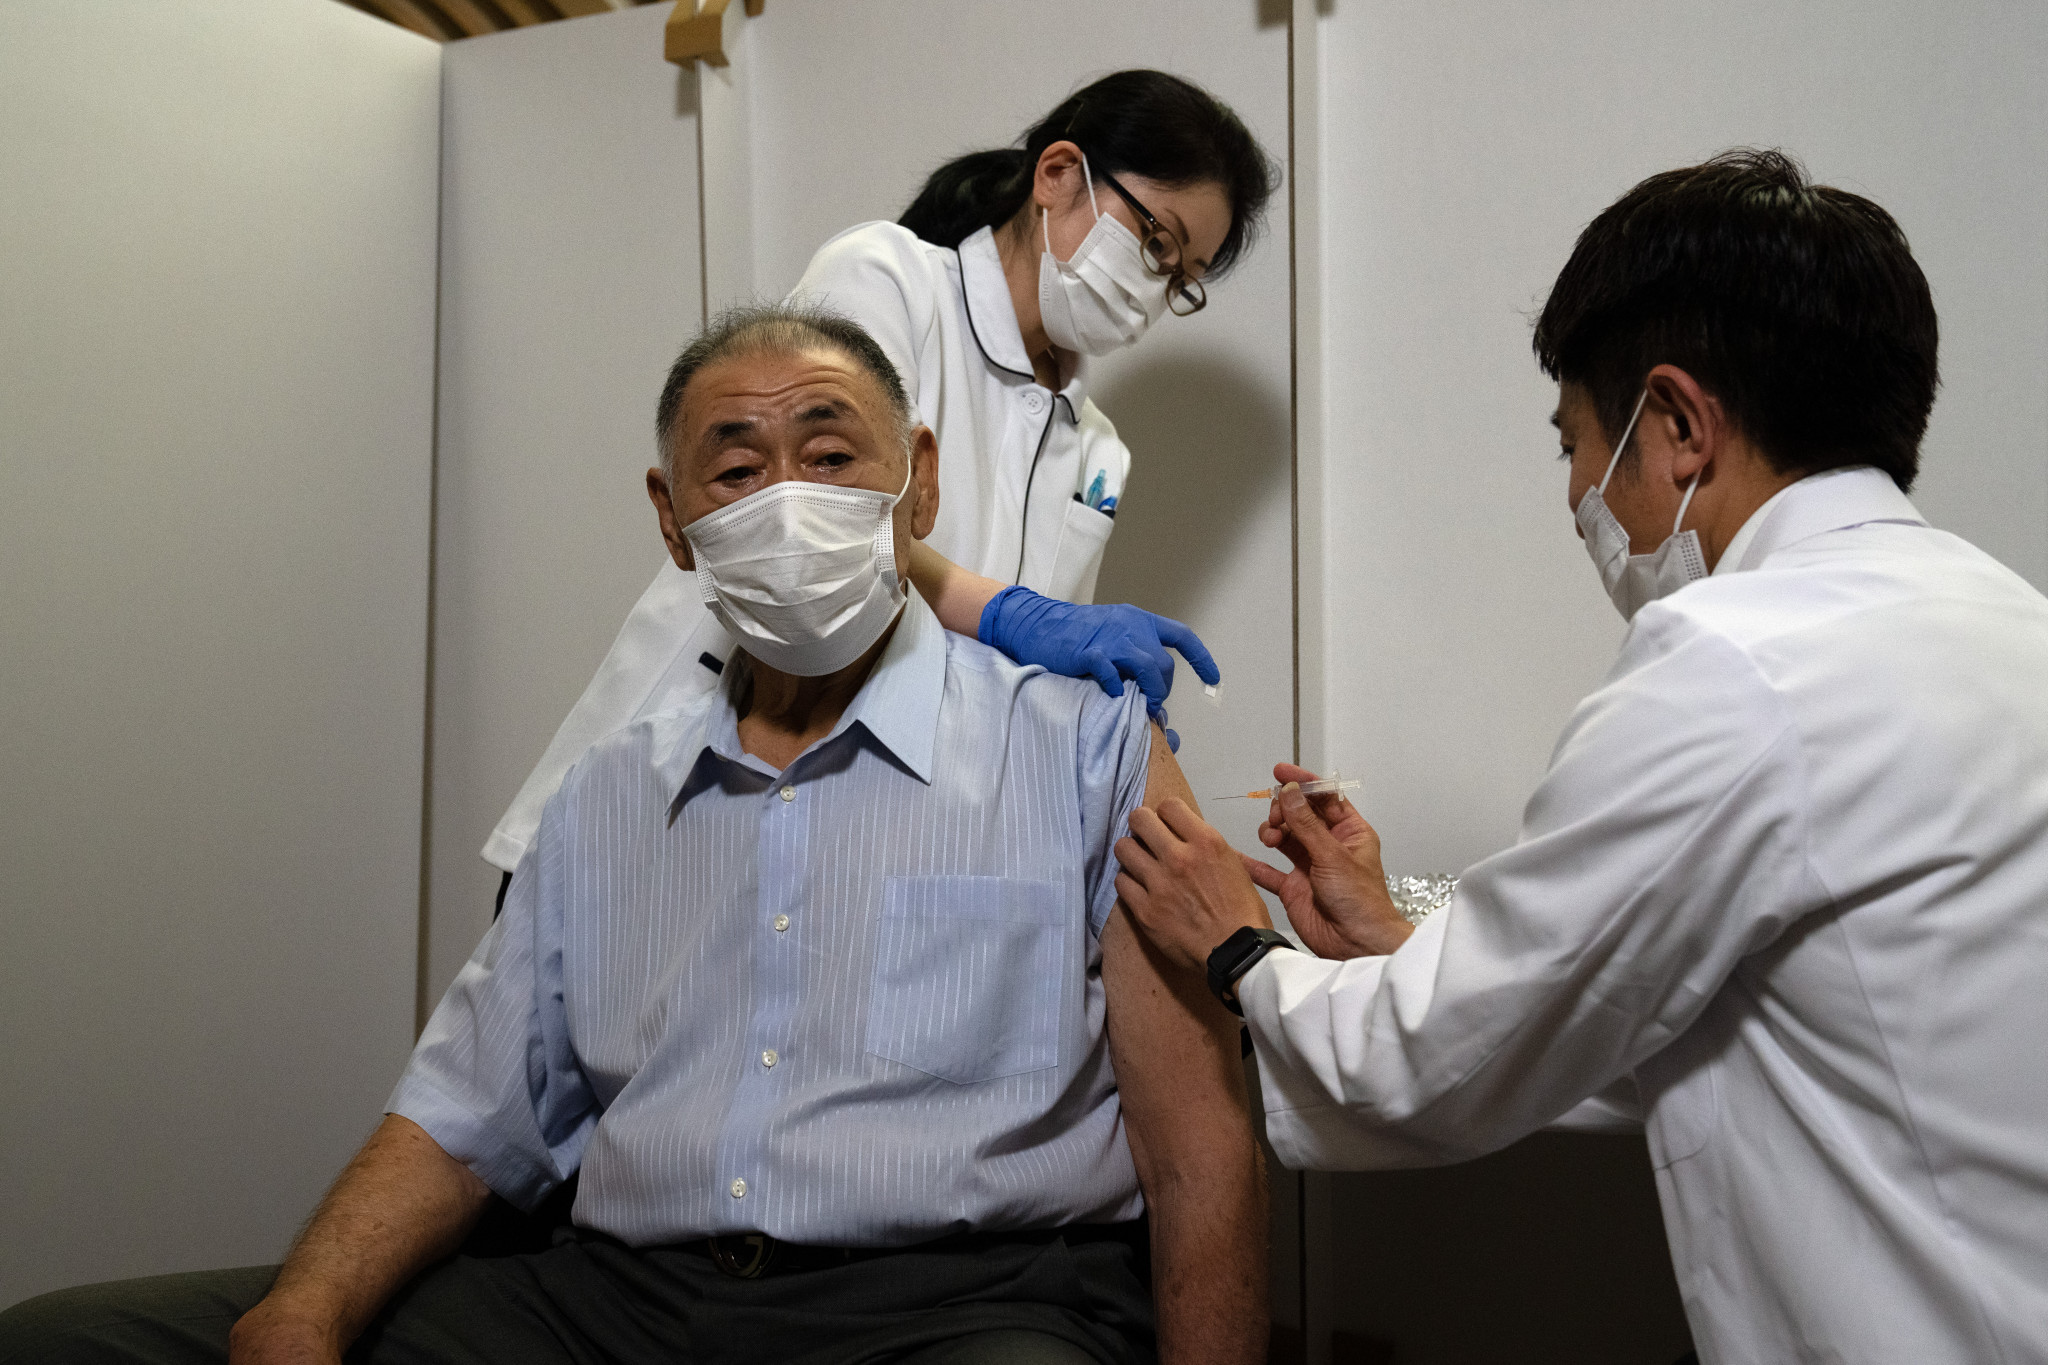 Mass vaccination centre opens in Tokyo 60 days before Olympics